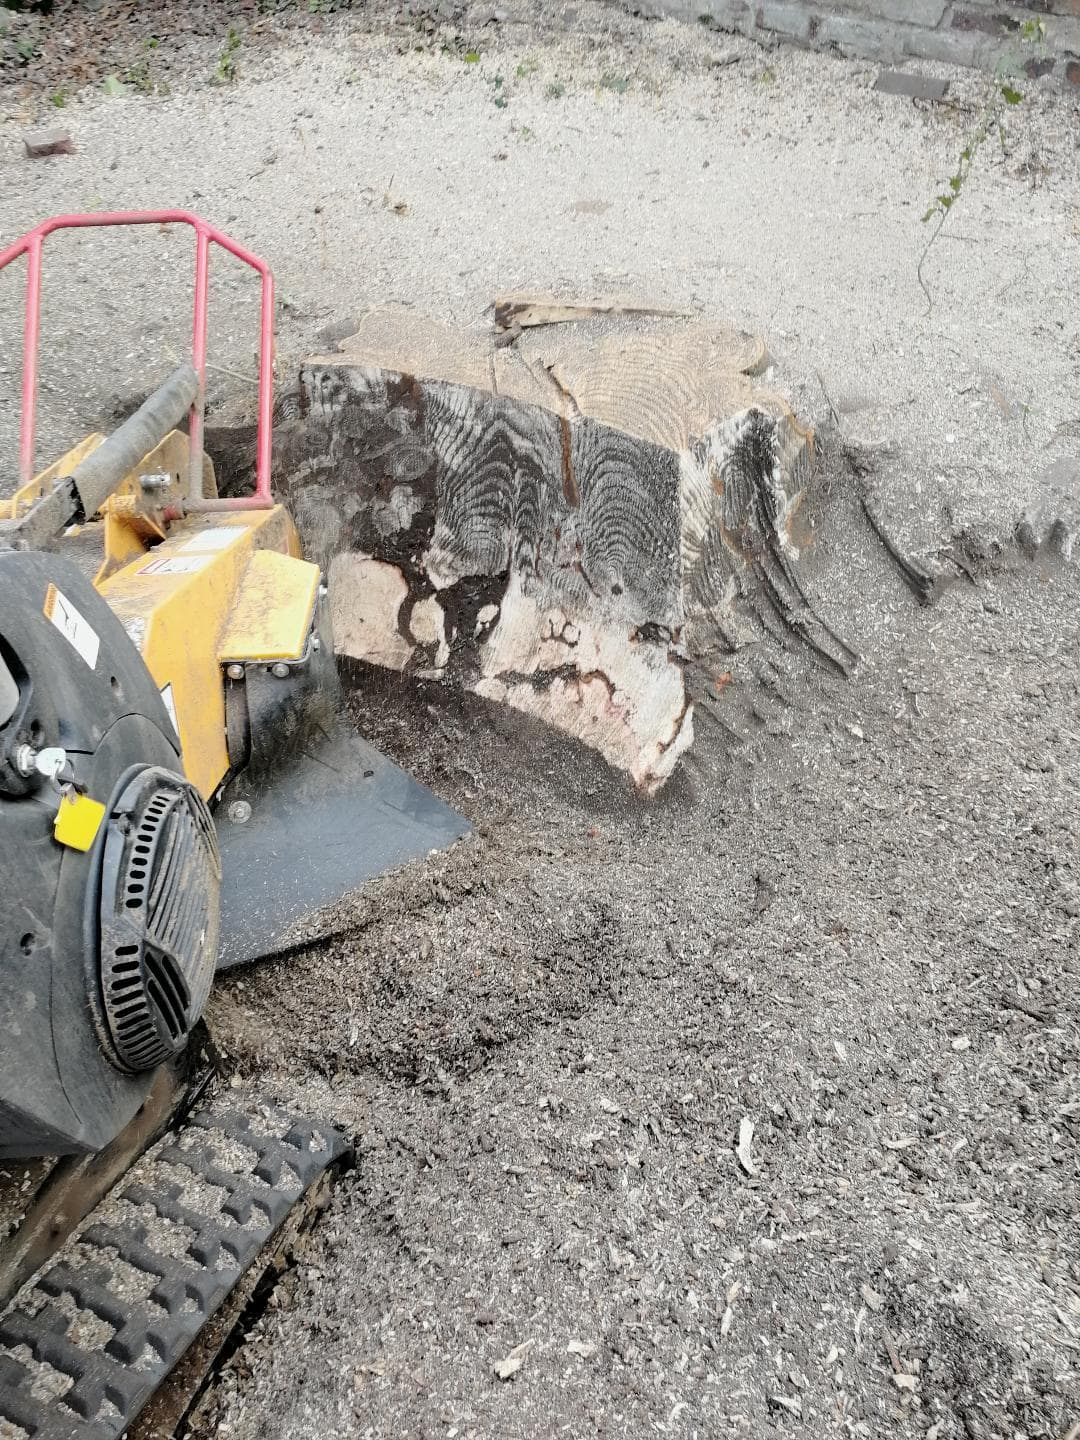 Grinding out a large beech tree stump in Hale during